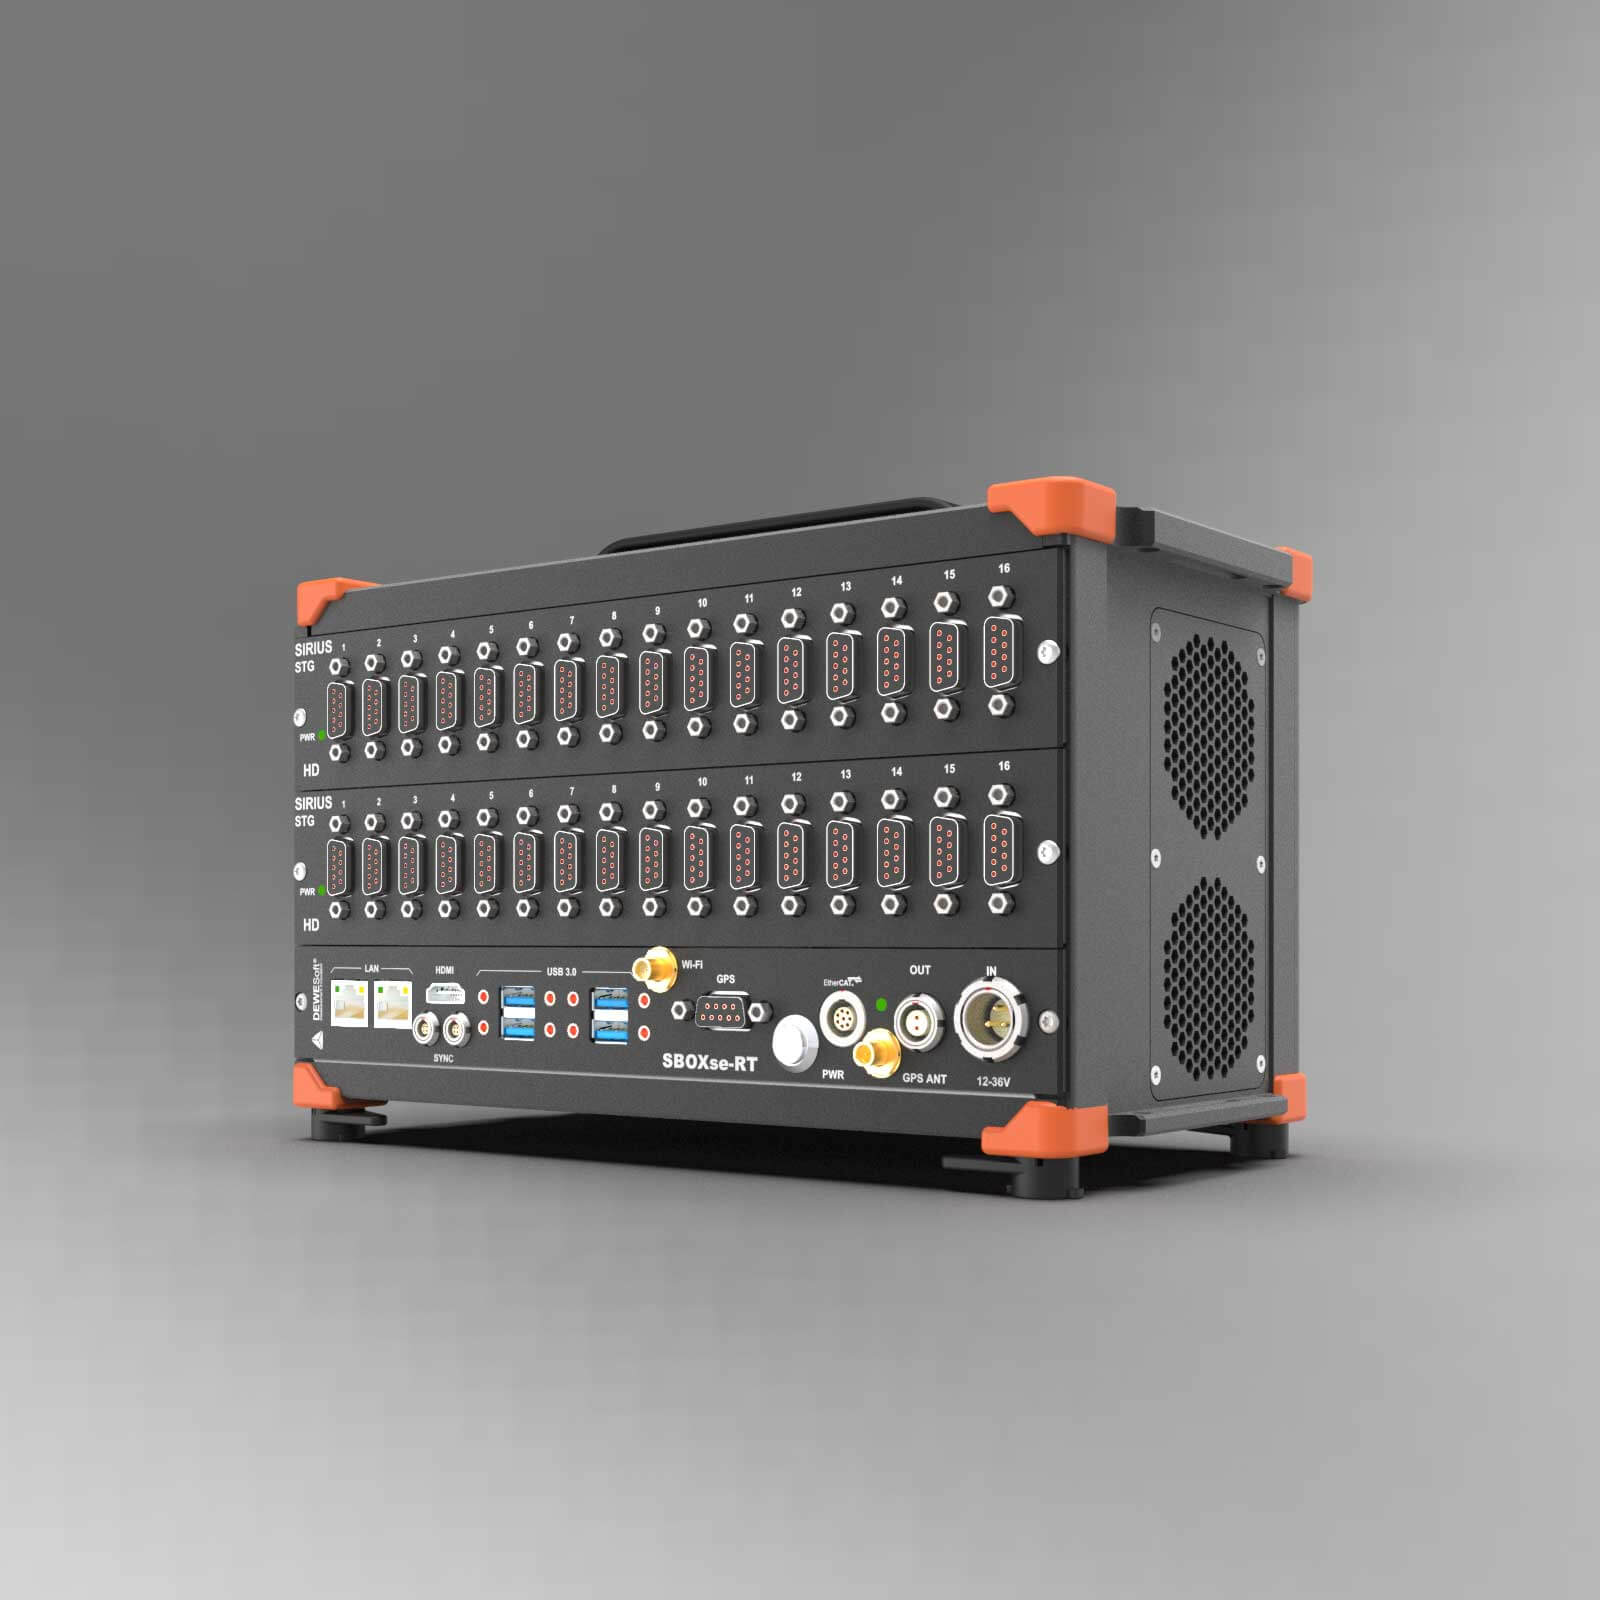 SIRIUS R2rt DAQ and control systm